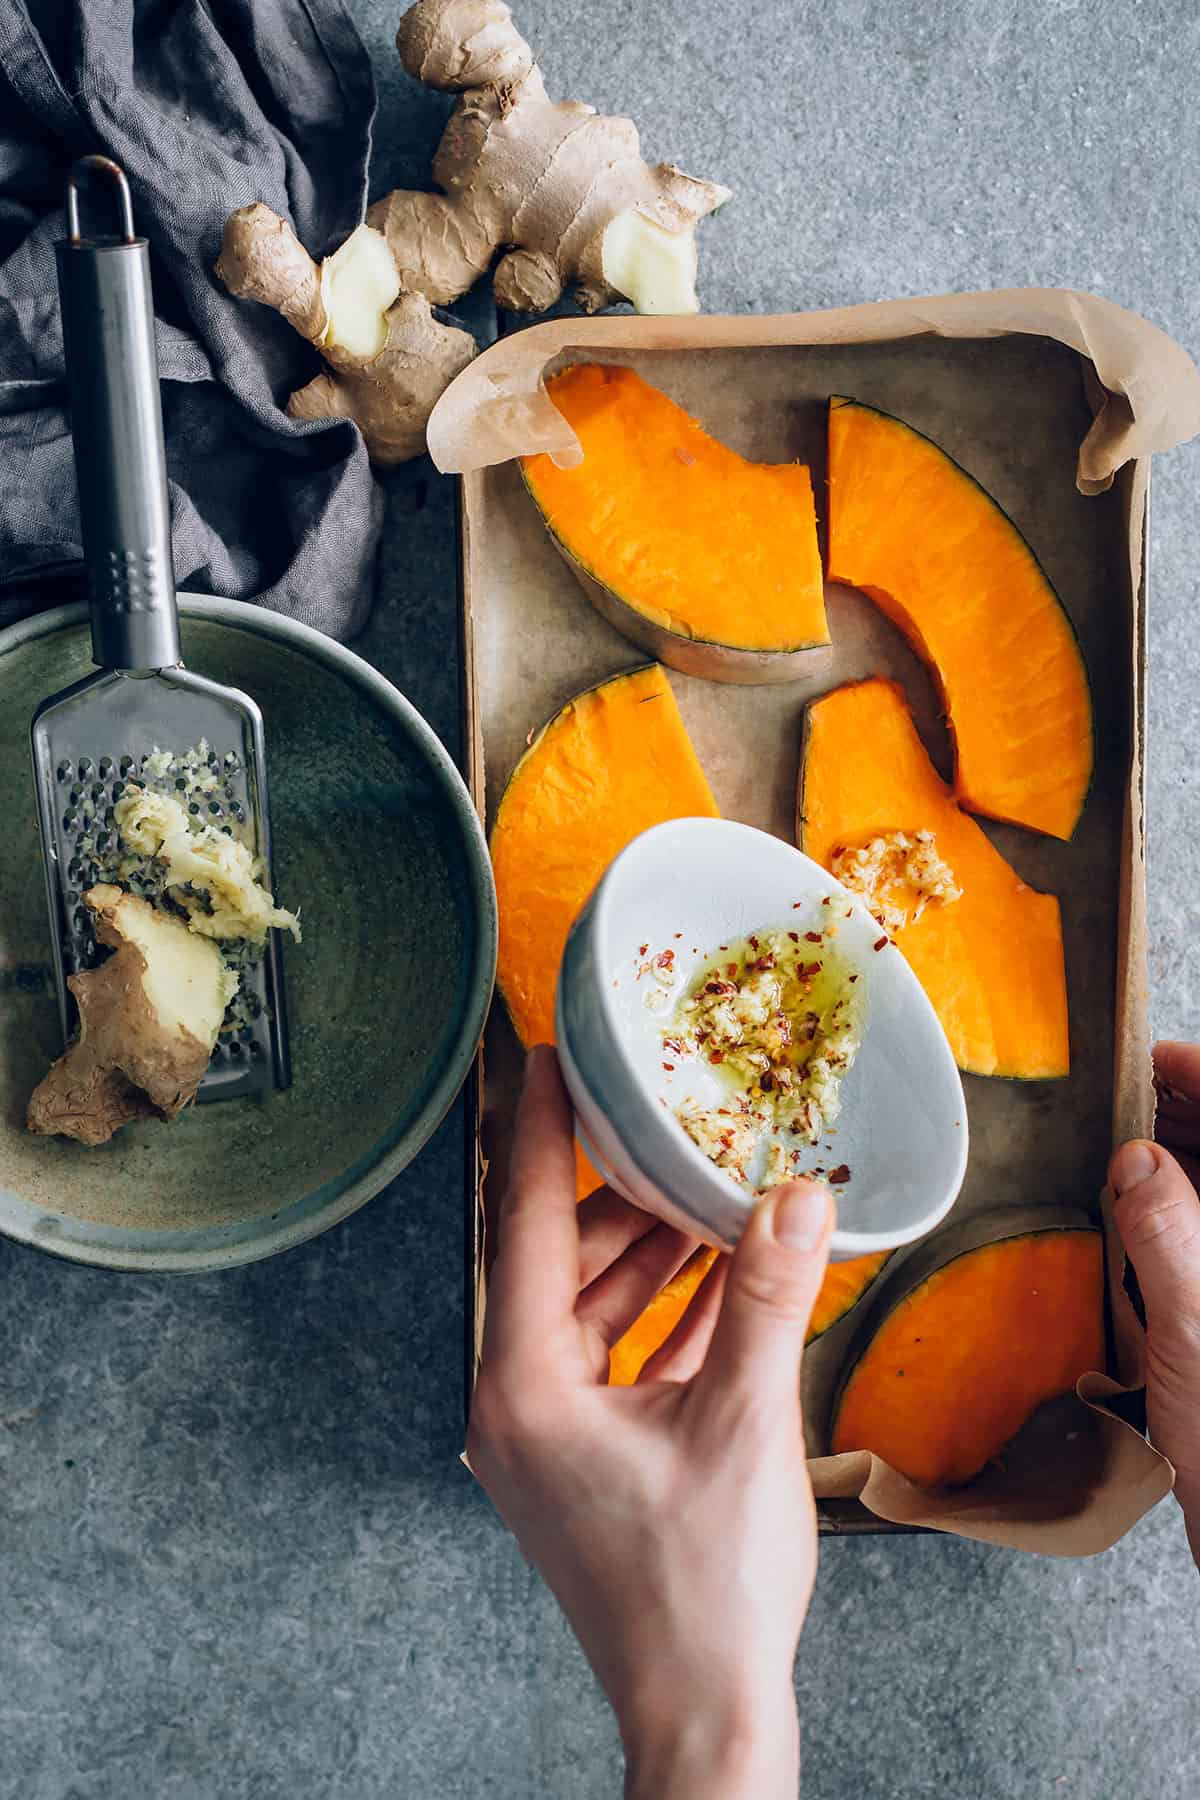 Ginger-Chili Roasted Winter Squash + 5 Health Benefits of Ginger